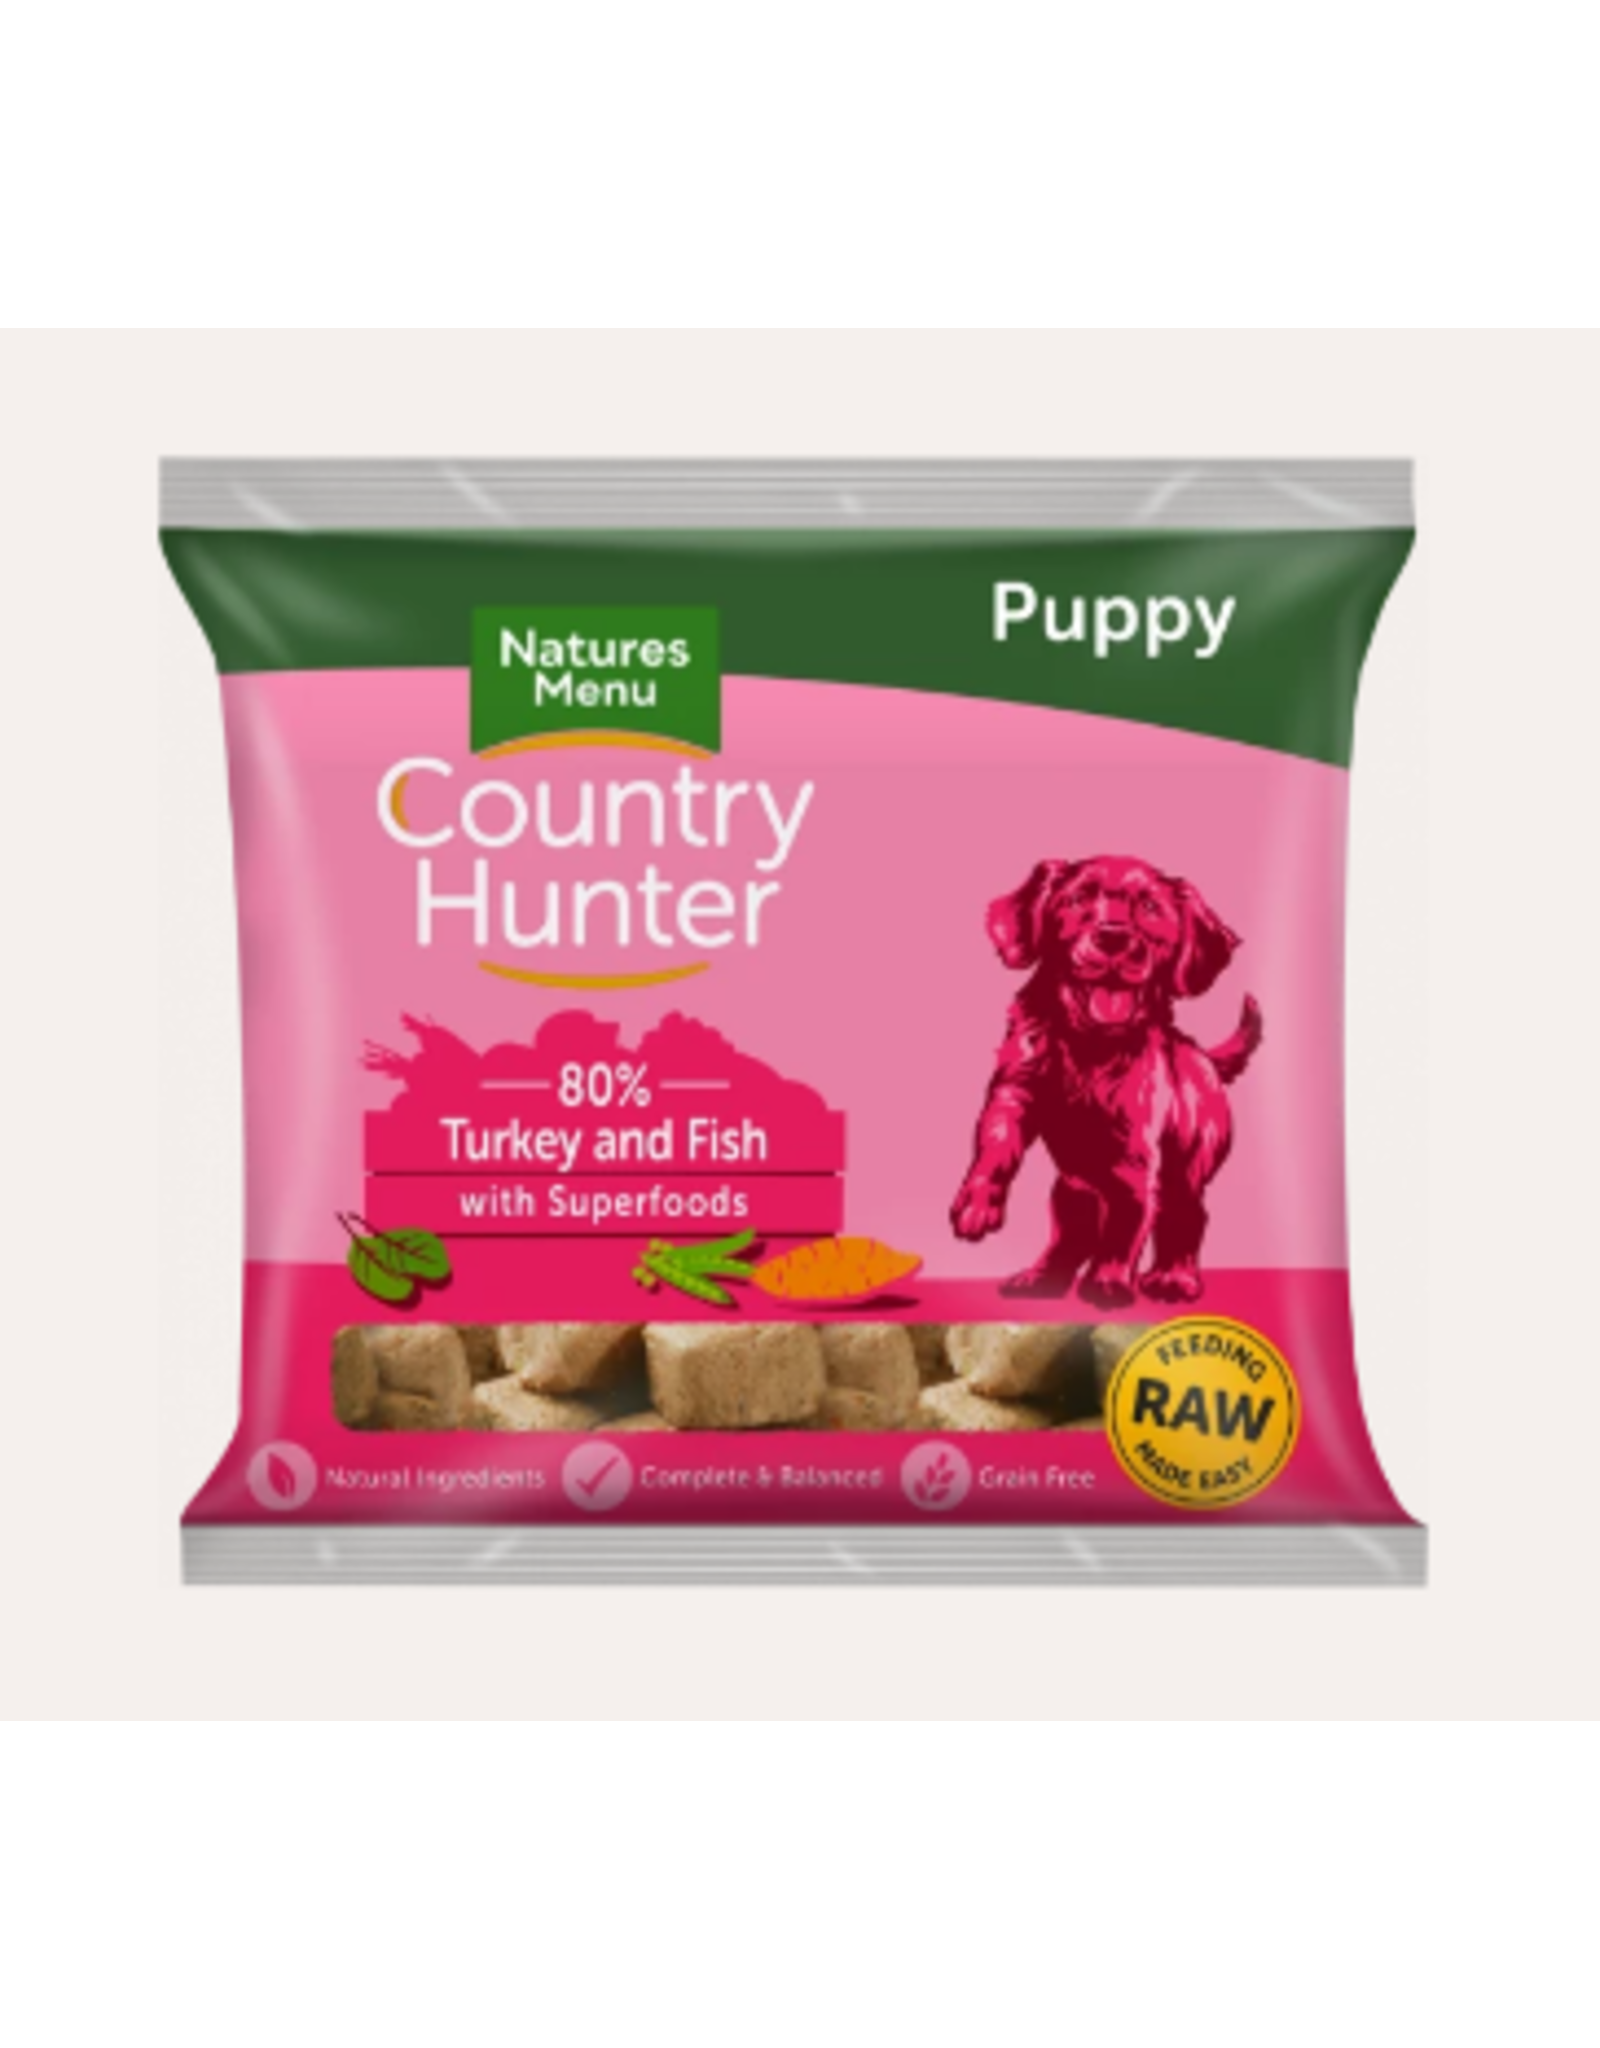 Natures Menu Country Hunter Nuggets Puppy 1kg